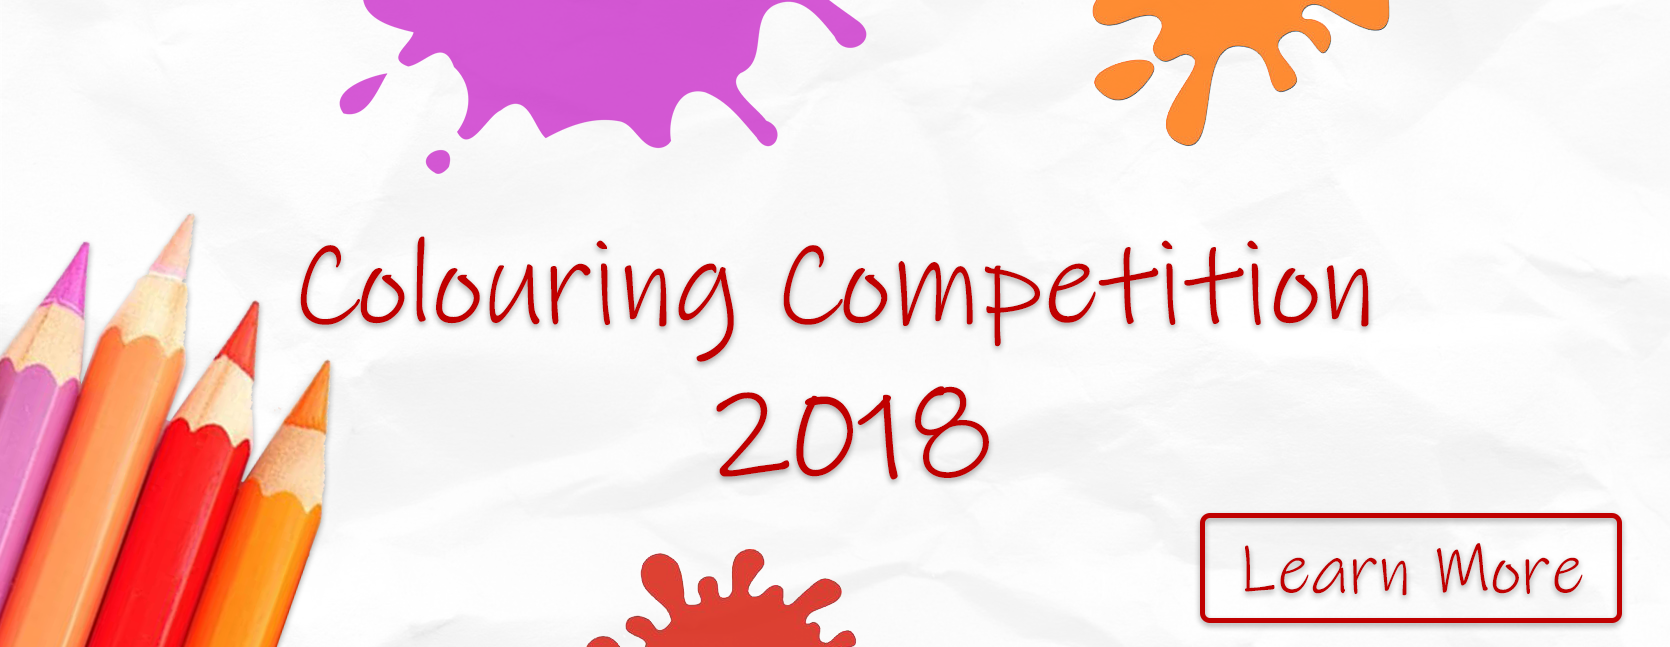 colouring_competition_2018_cnw_banner.png